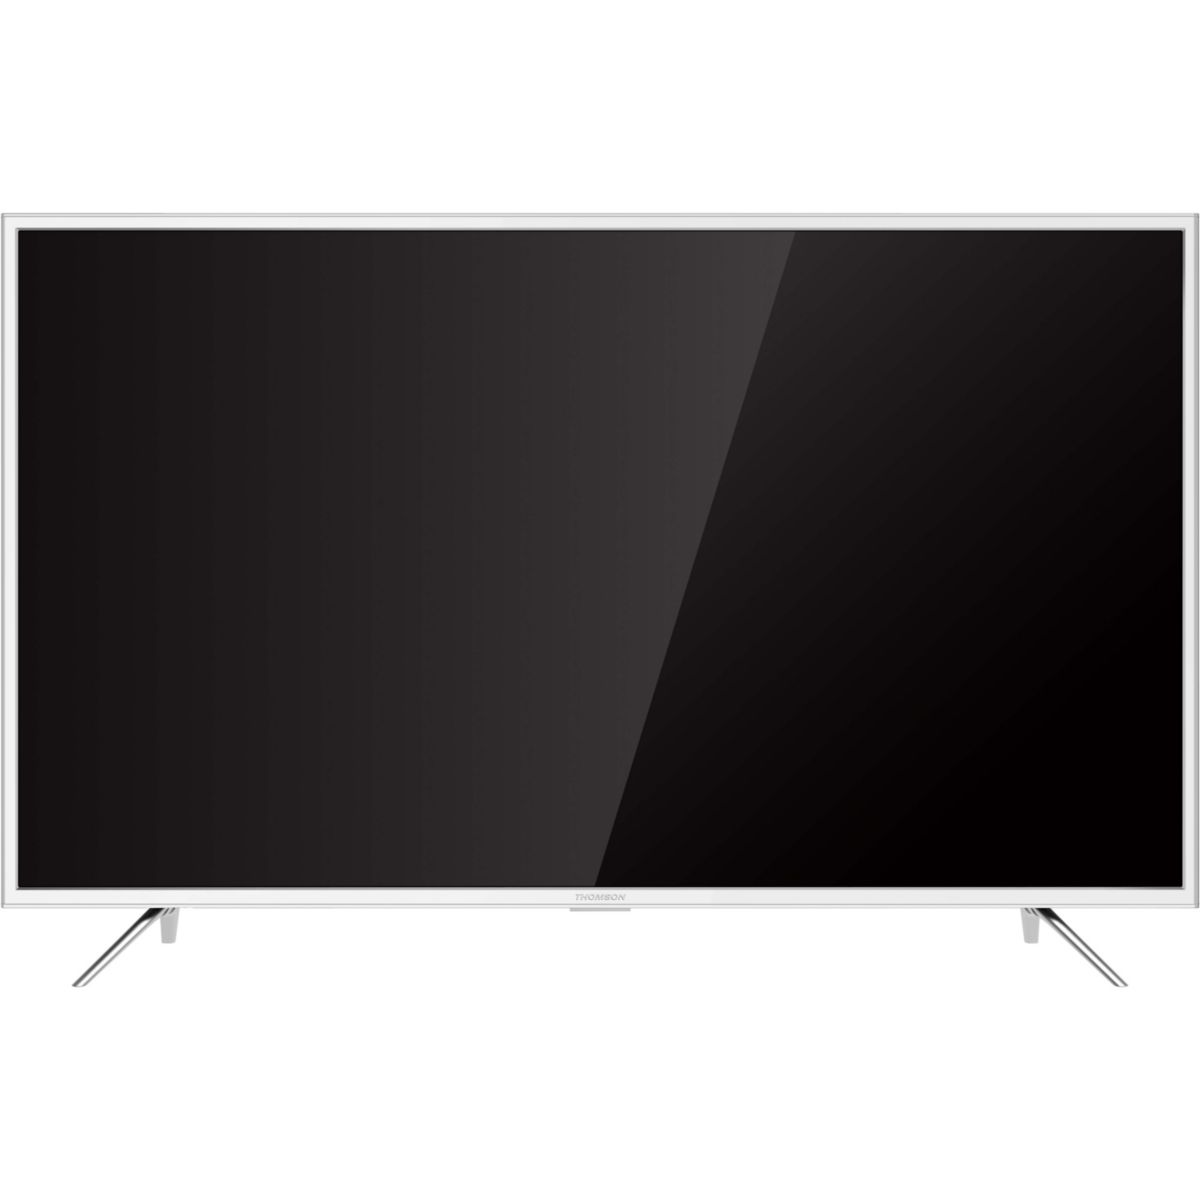 TV THOMSON 49UC6416W